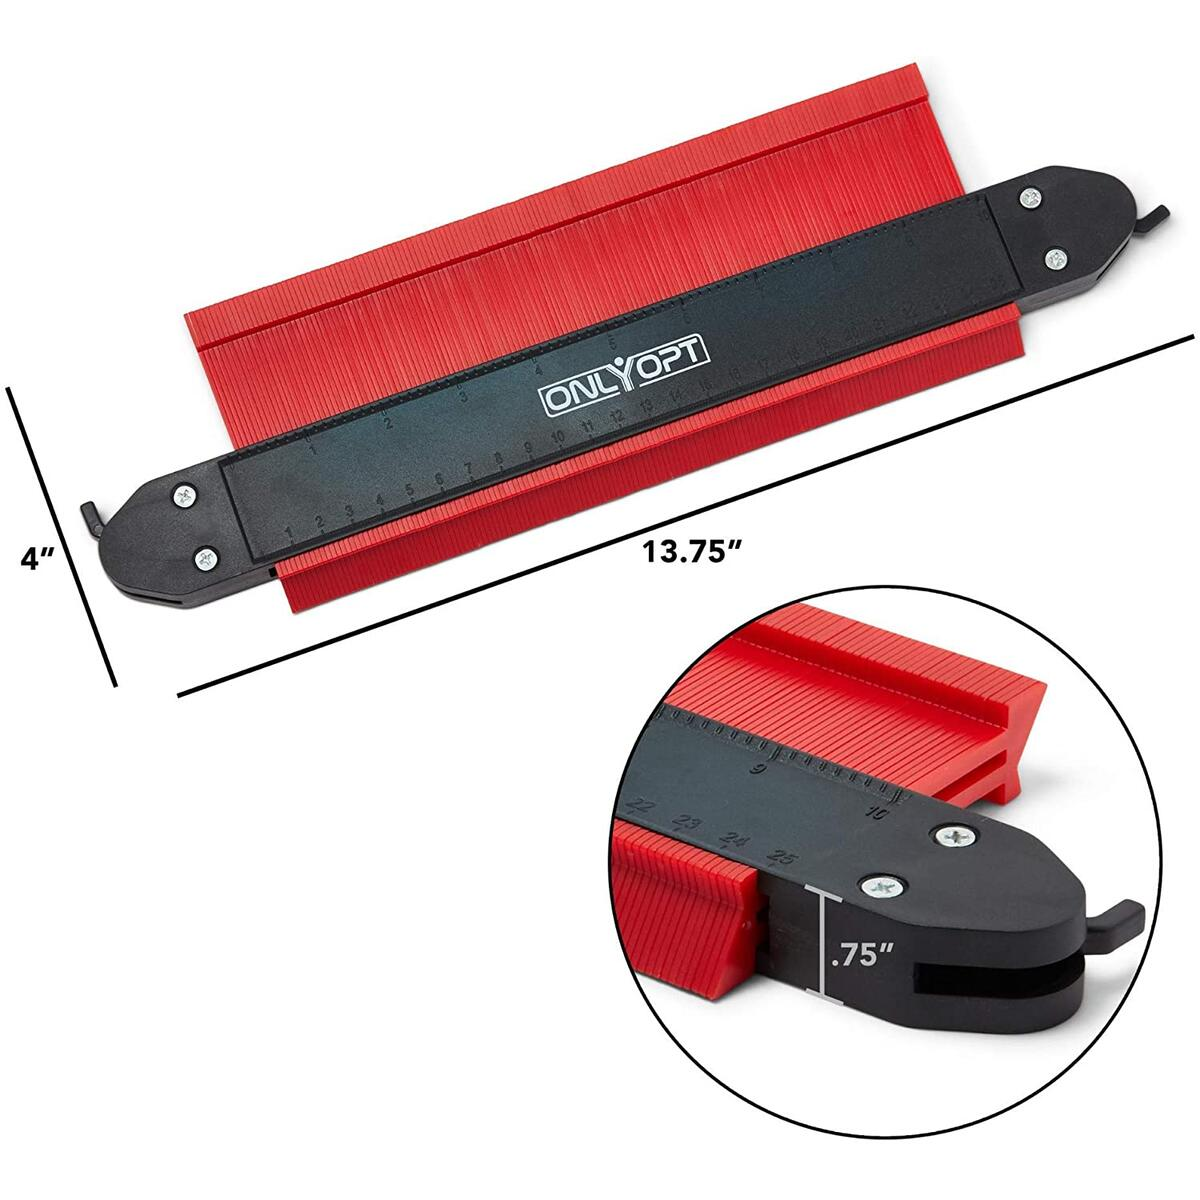 ONLYOPT Contour Gauge Tool - 10 Inch - Home Improvement Tool - Angle Duplicator - Accurate Profile - Copy Irregular Shapes - DIY Template - Lock Feature - Red